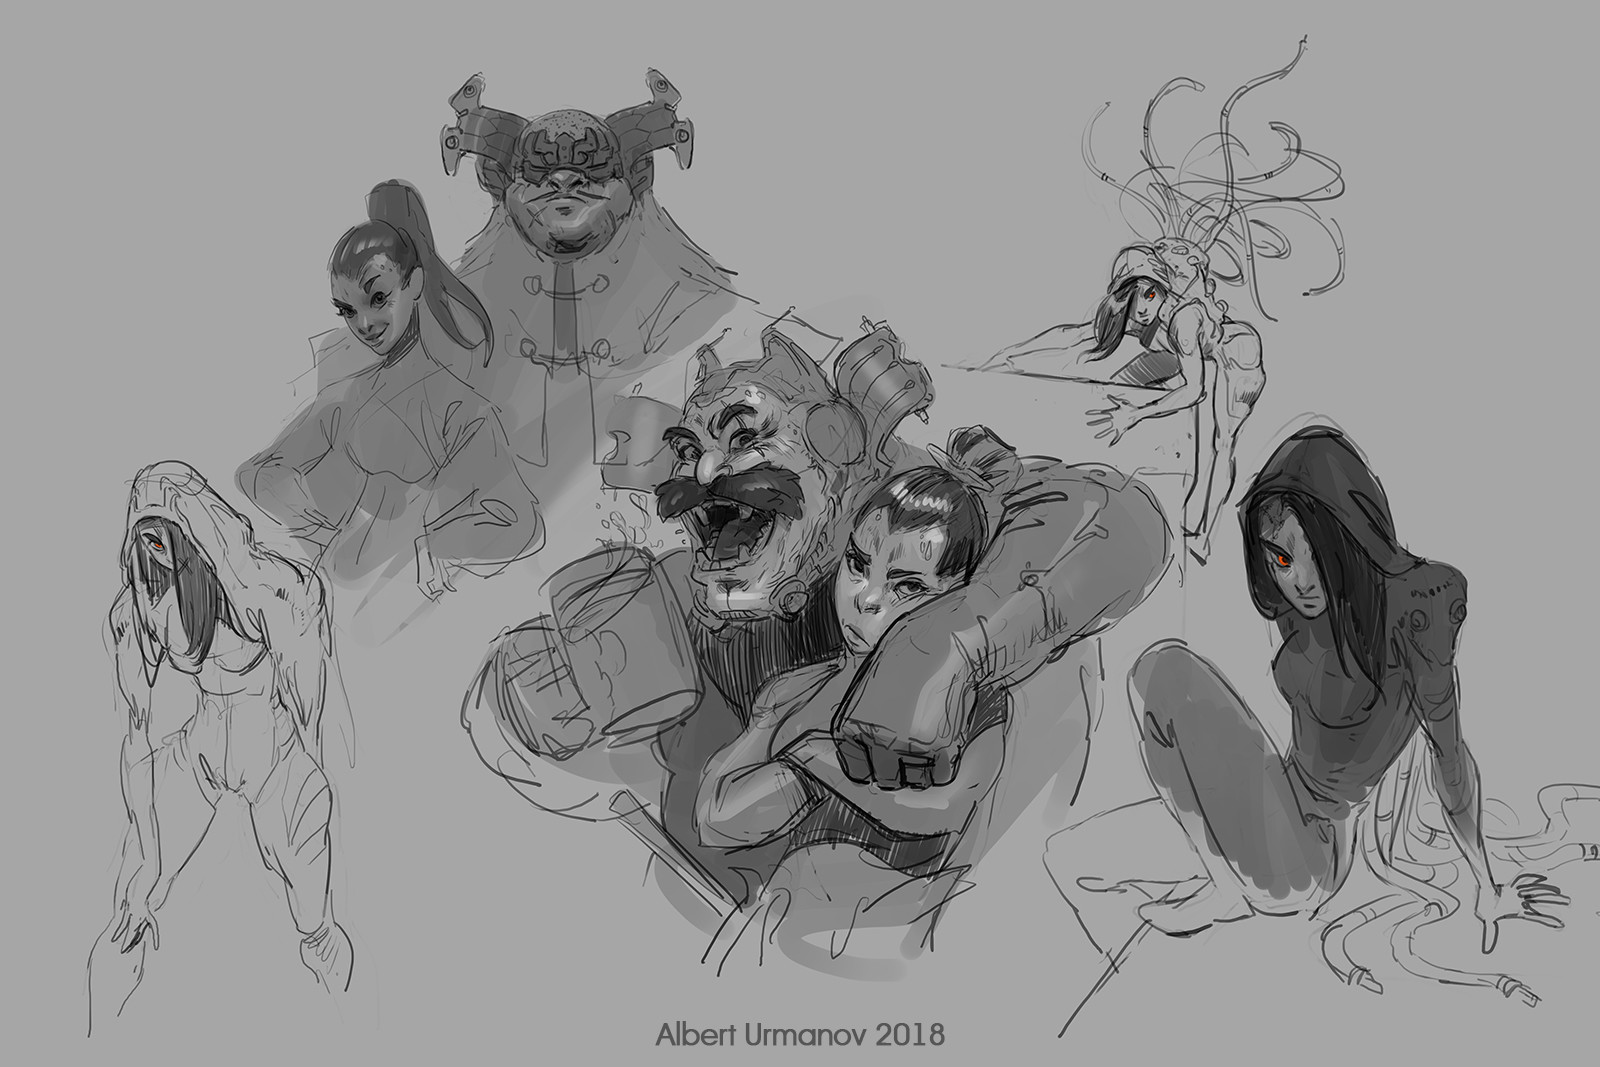 Early sketches and ideas